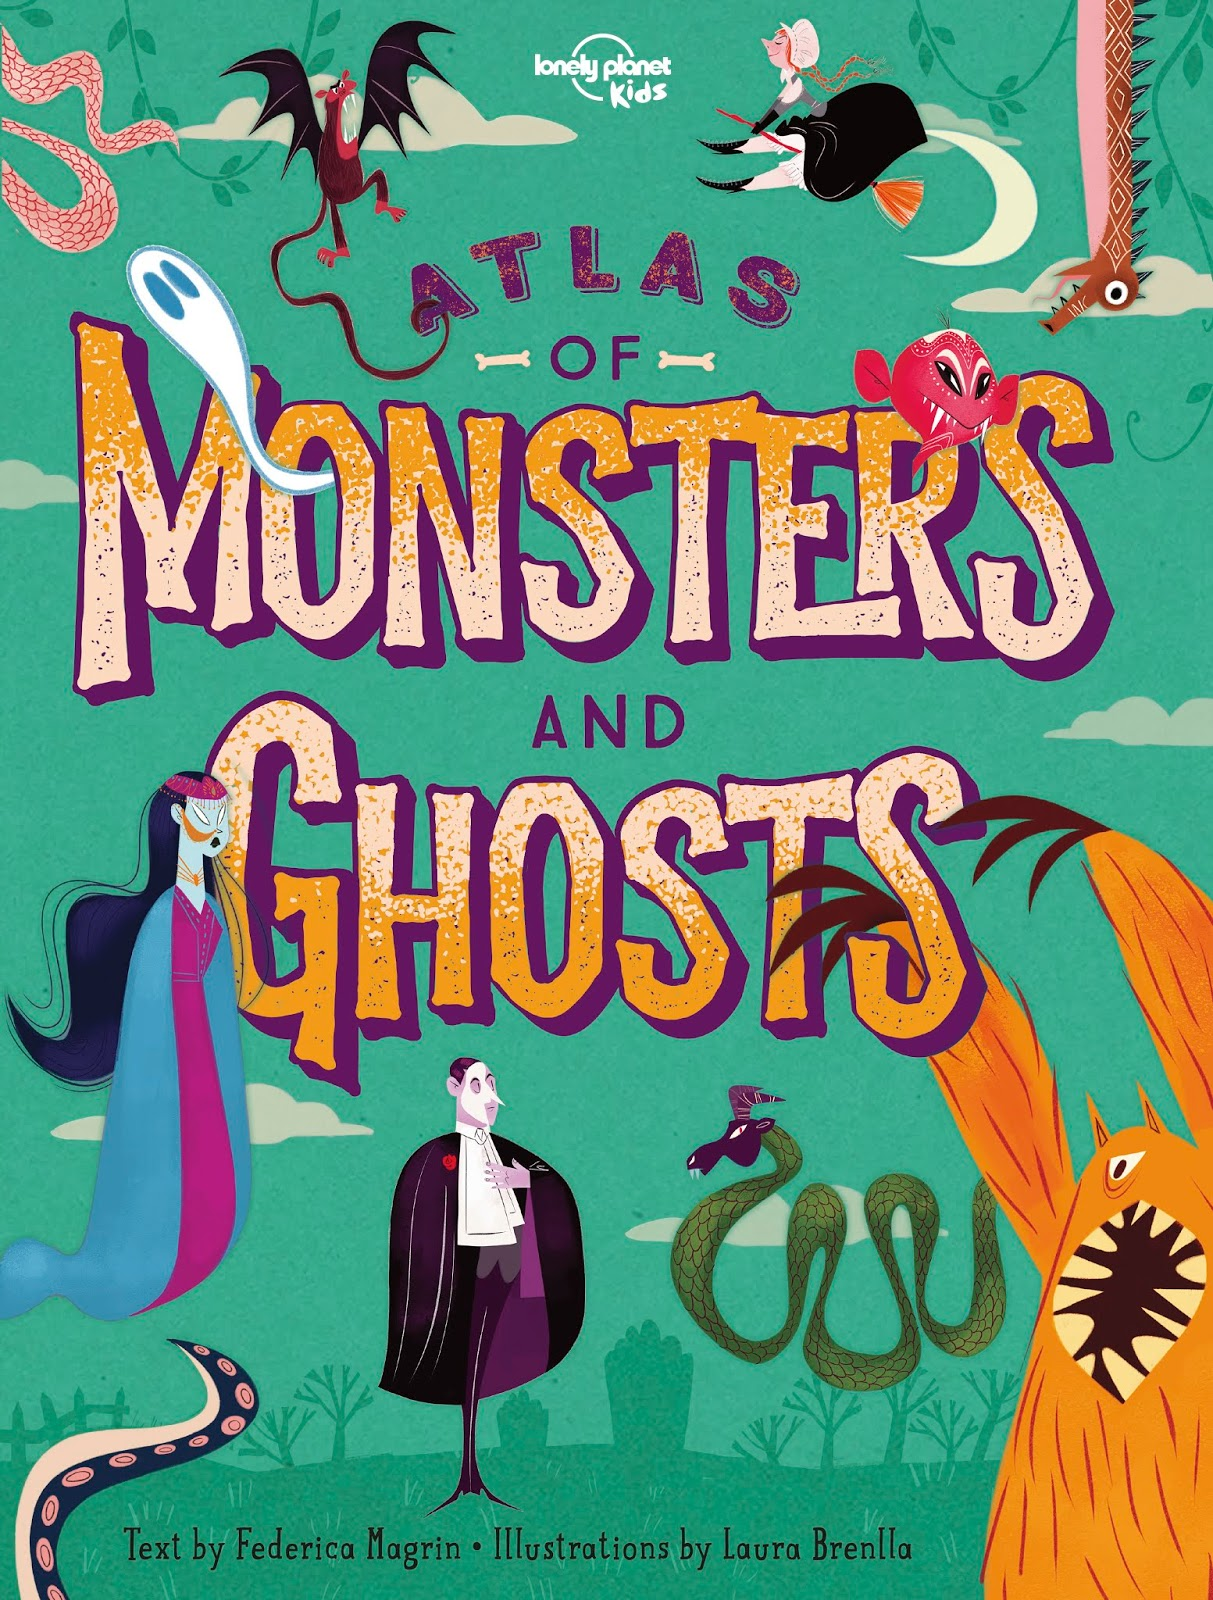 Kids' Book Review: Review: Atlas of Monsters and Ghosts